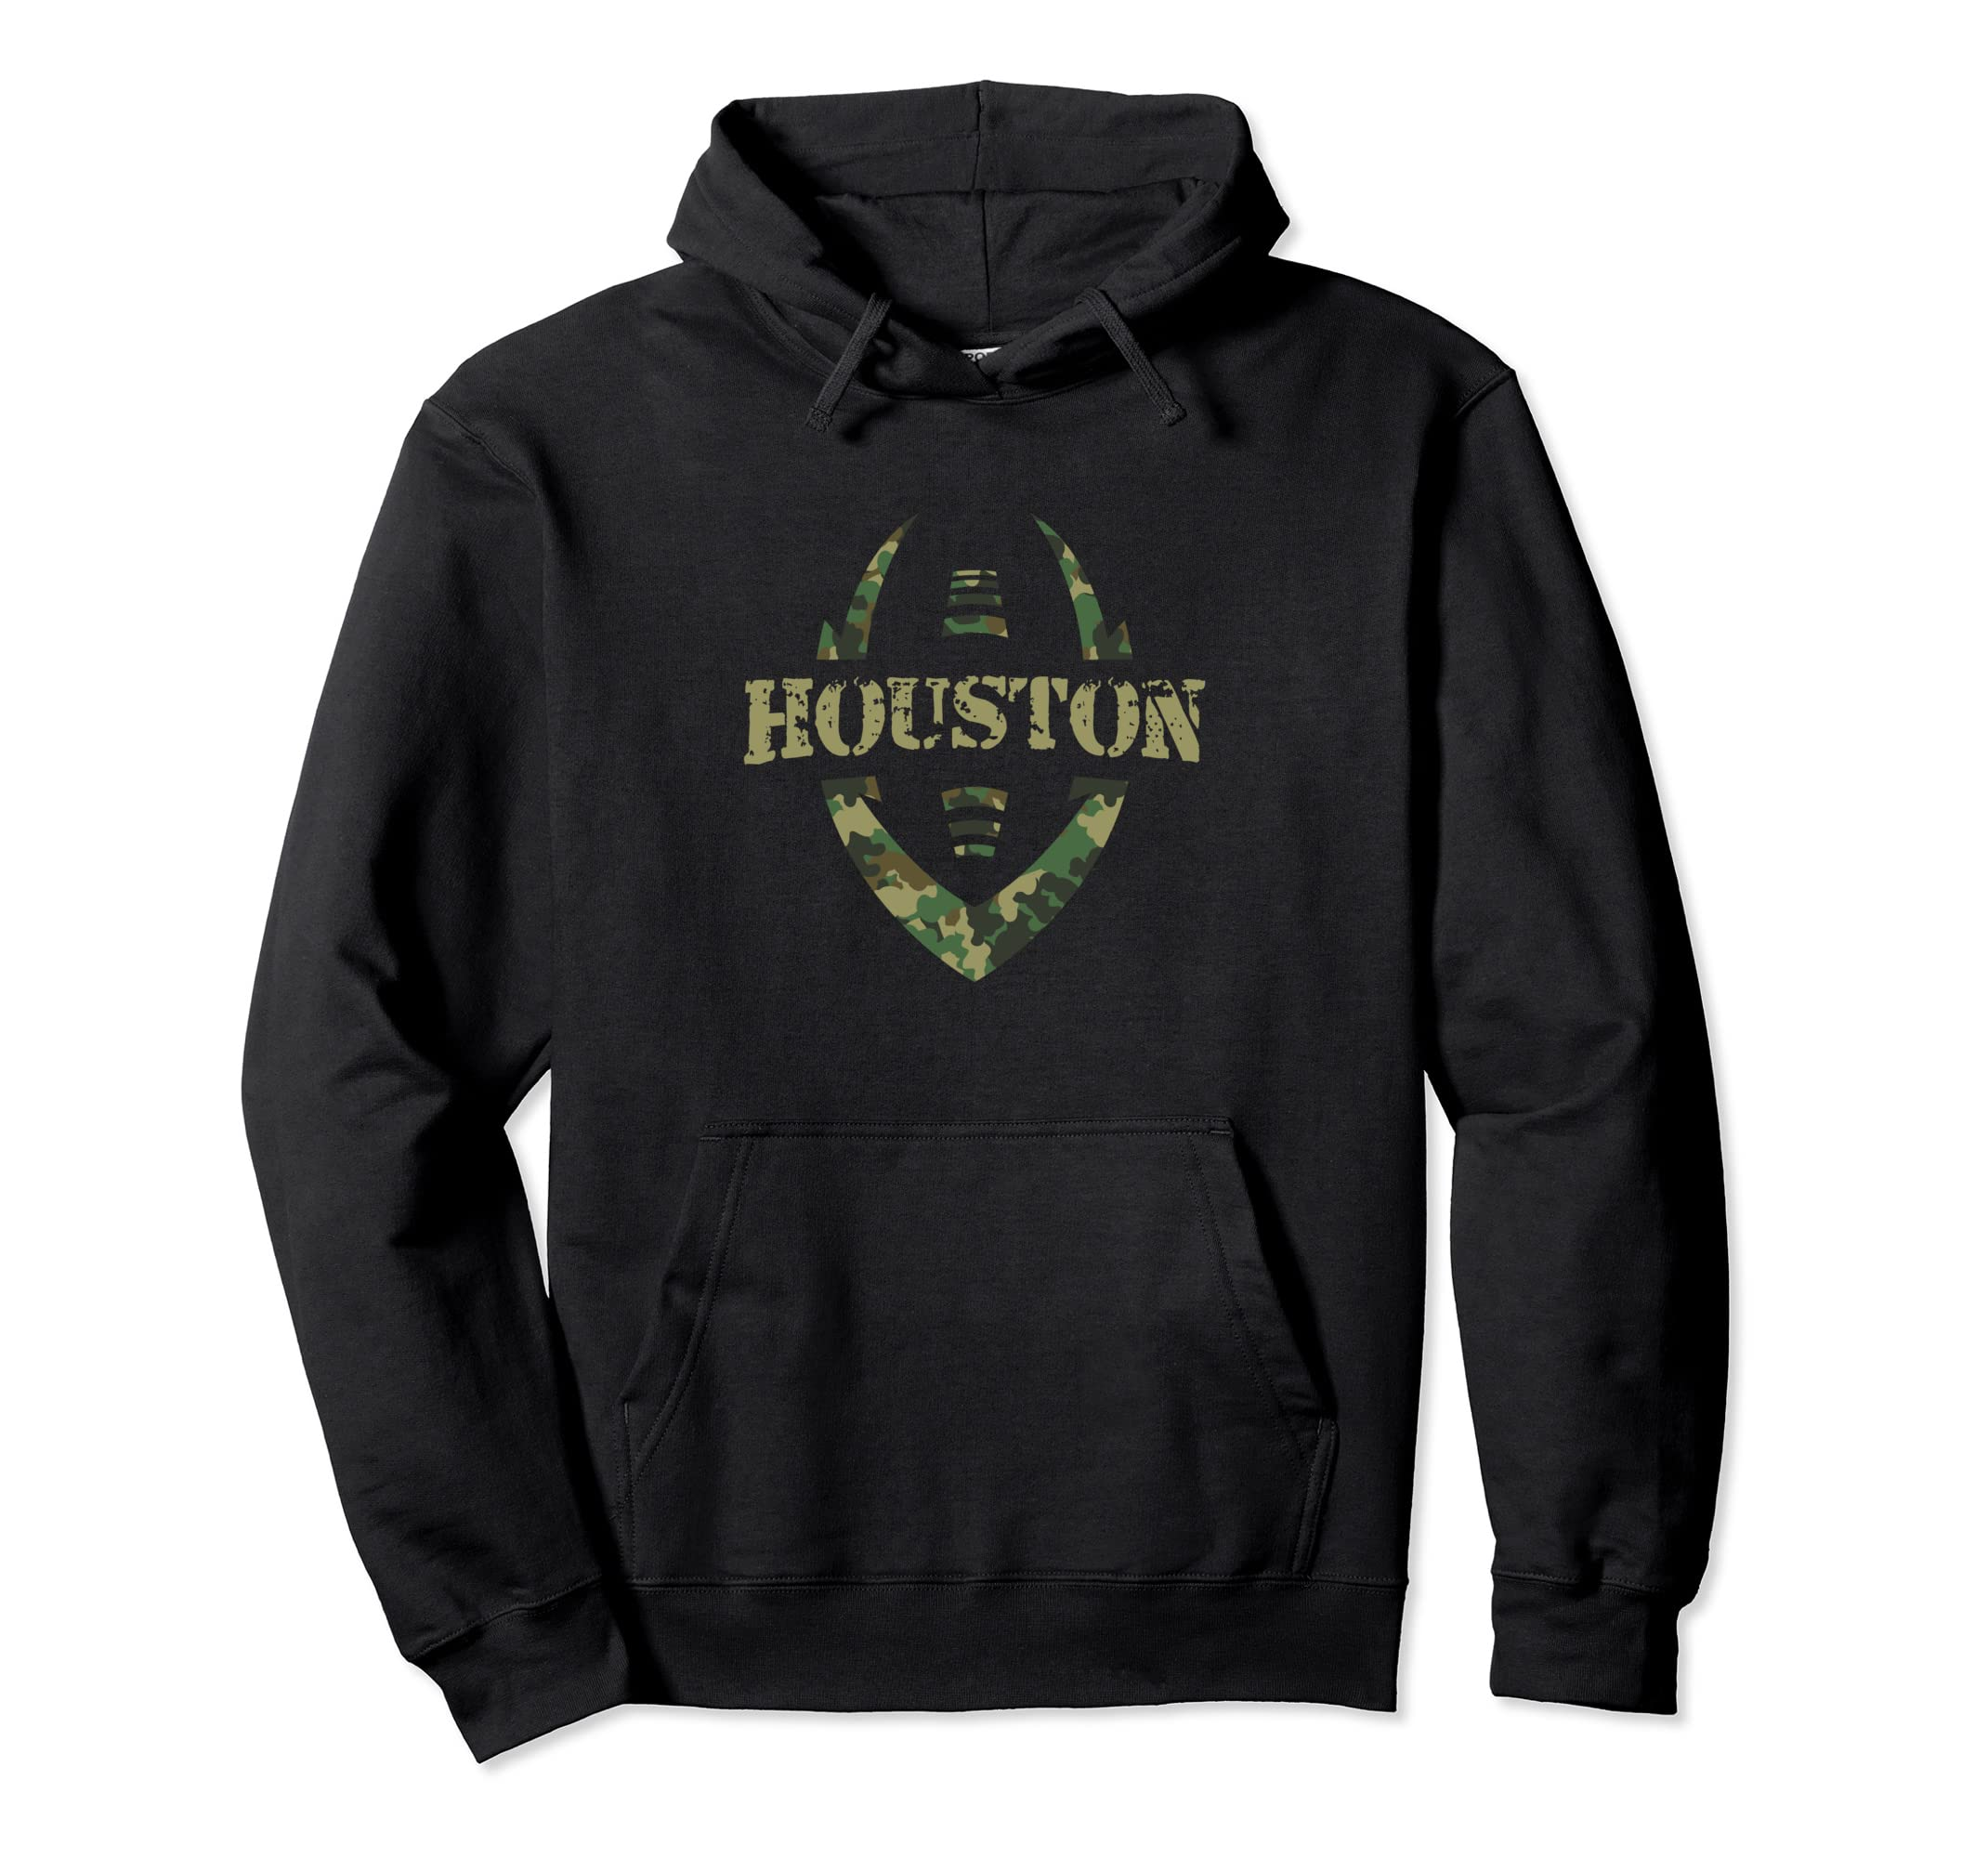 new arrivals 82caf 18593 Amazon.com: Houston Football Salute Military Service Hoodie ...